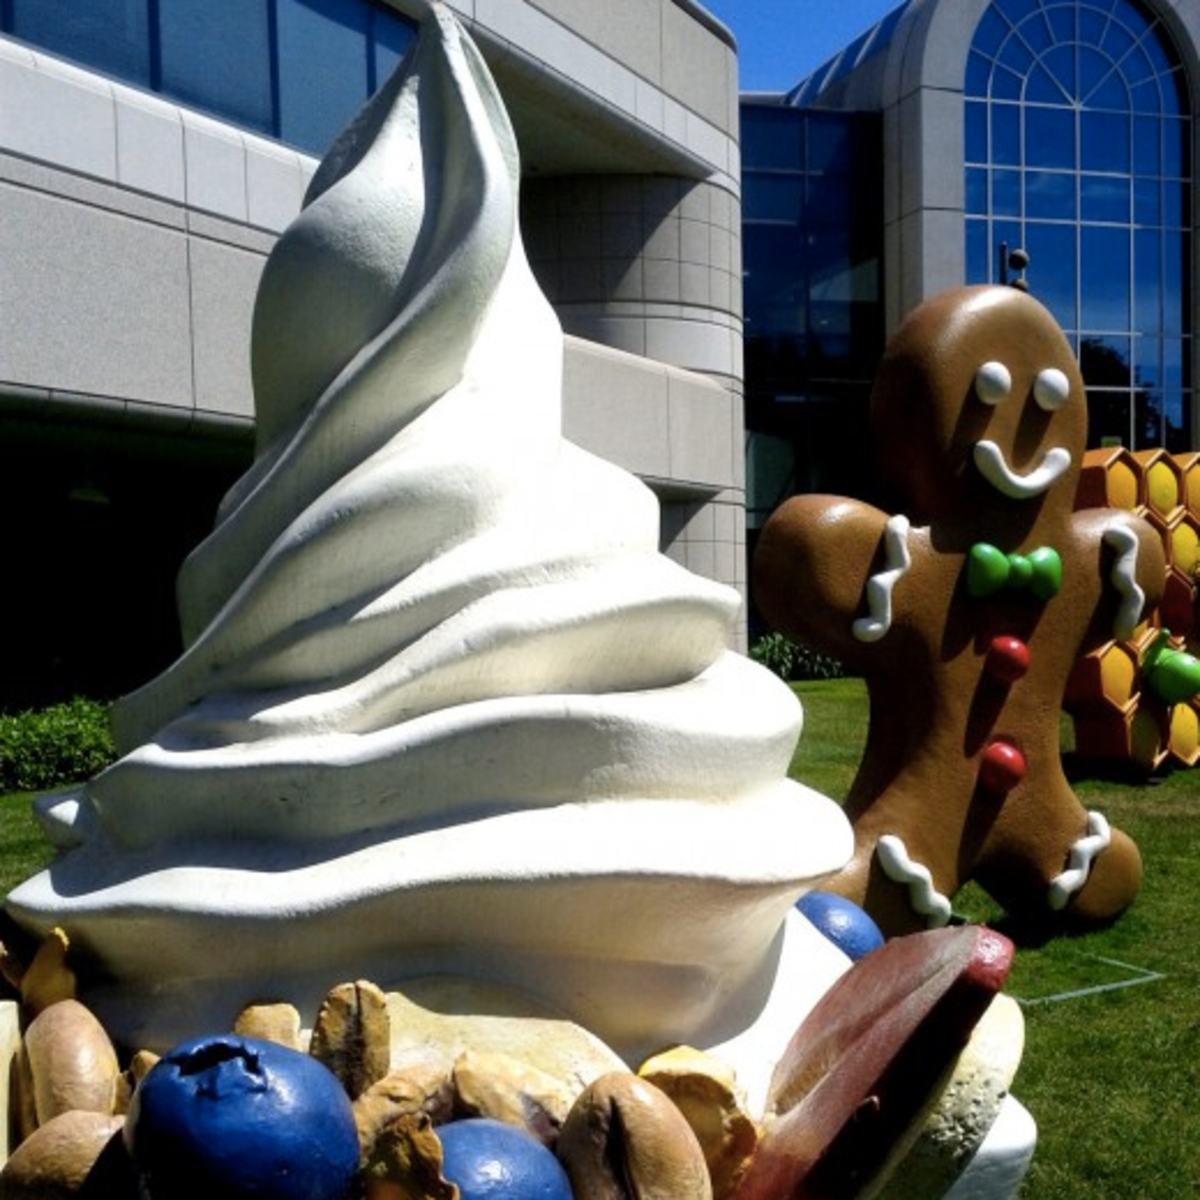 The Android froyo on Google's campus